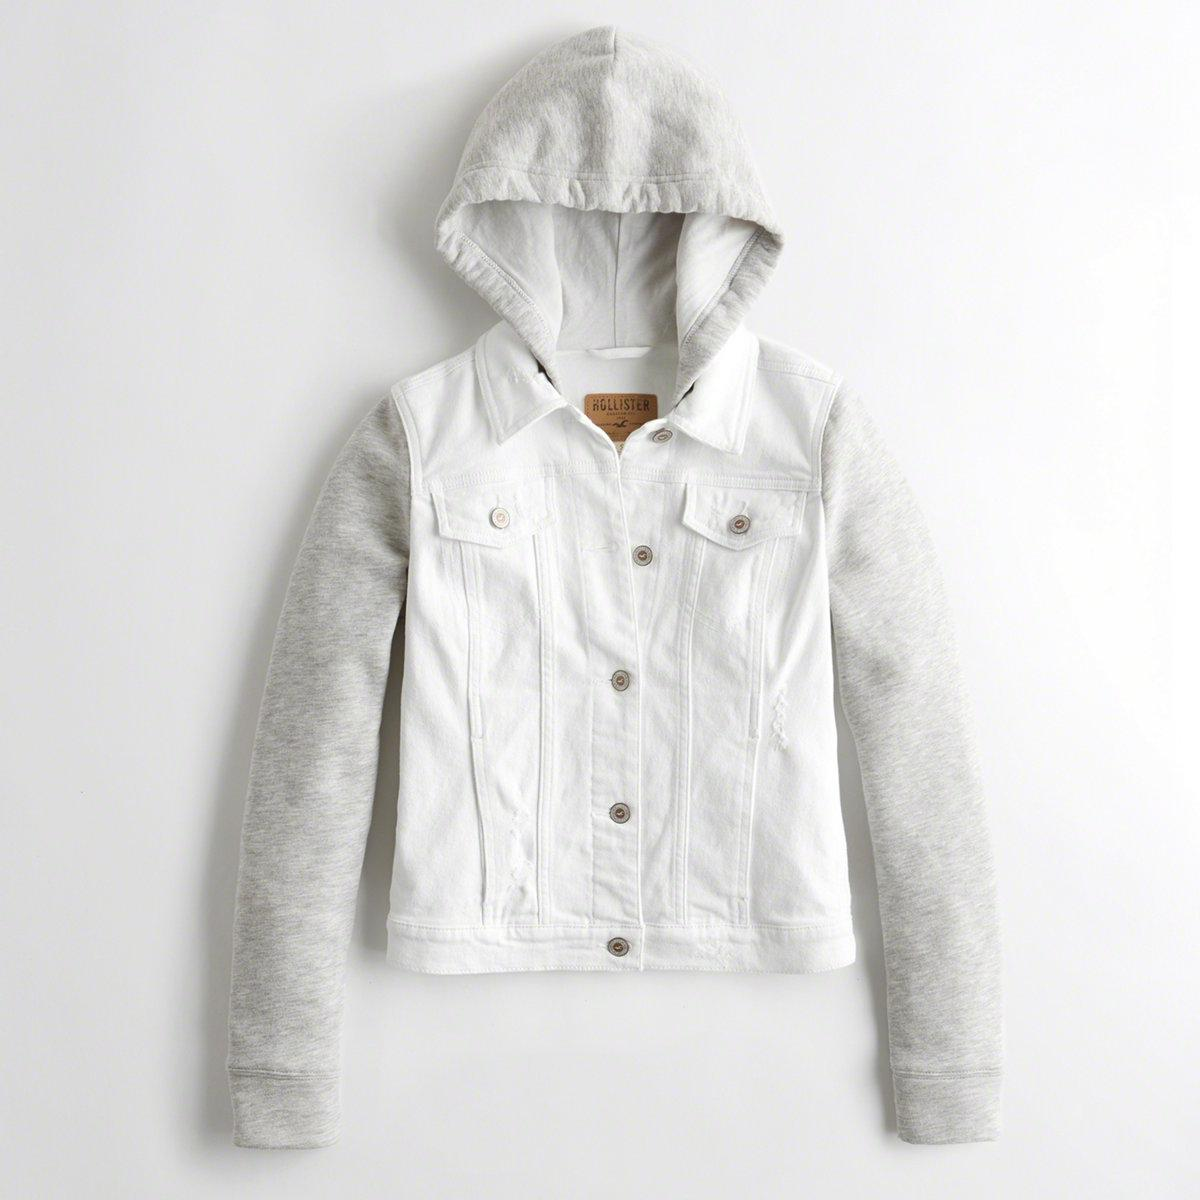 842717ccf Hollister Girls Hooded Denim Jacket From Hollister in Gray - Lyst